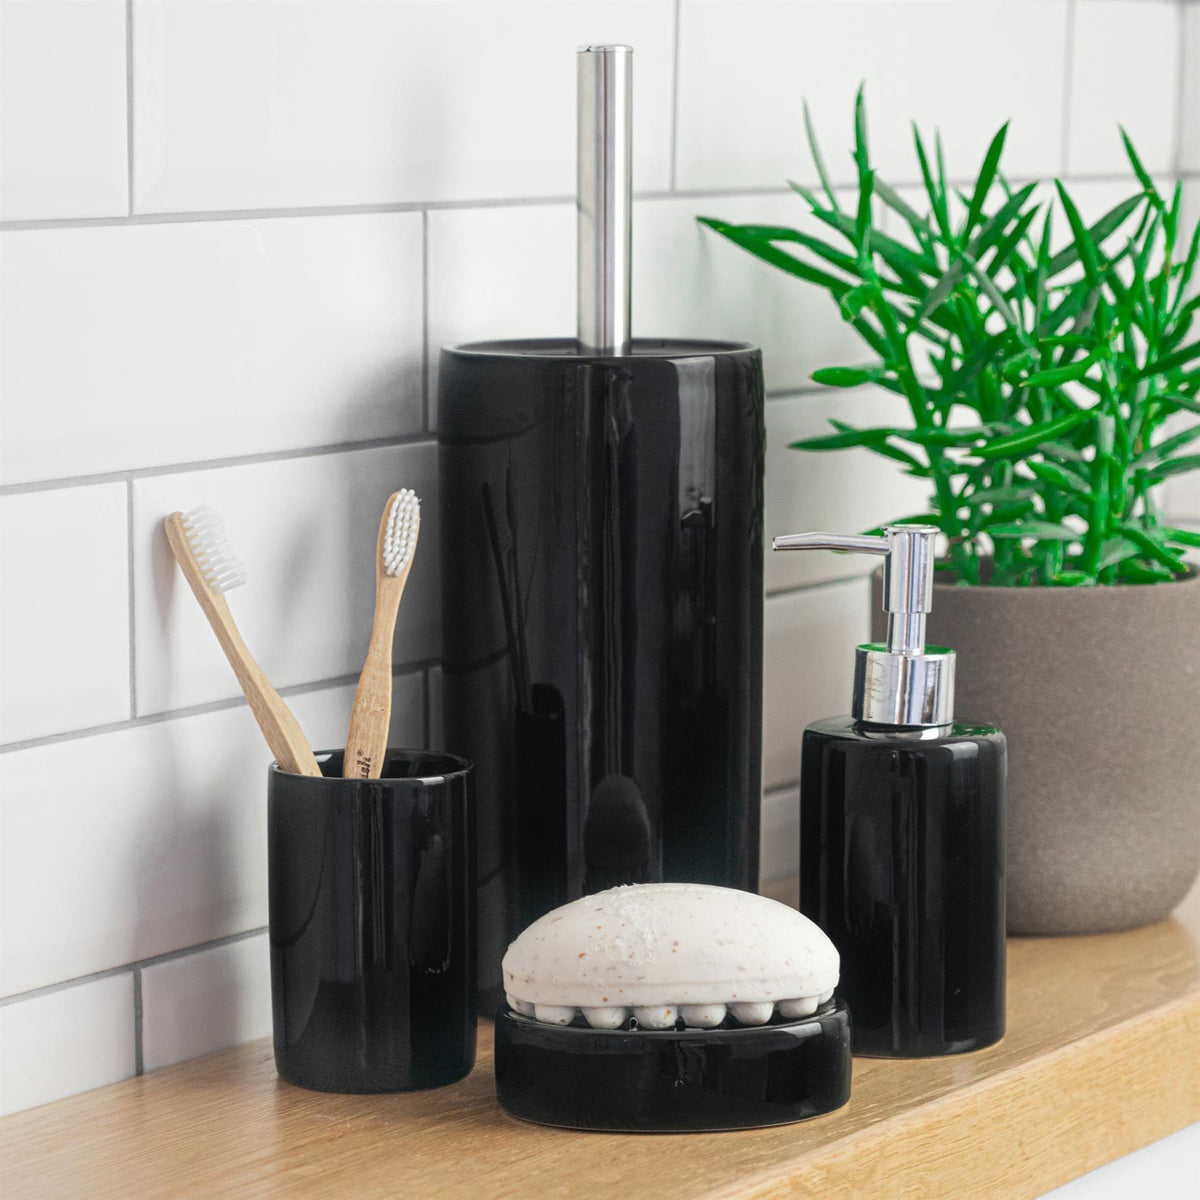 Harbour Housewares Ceramic Bathroom Toilet Brush & Holder Set Black